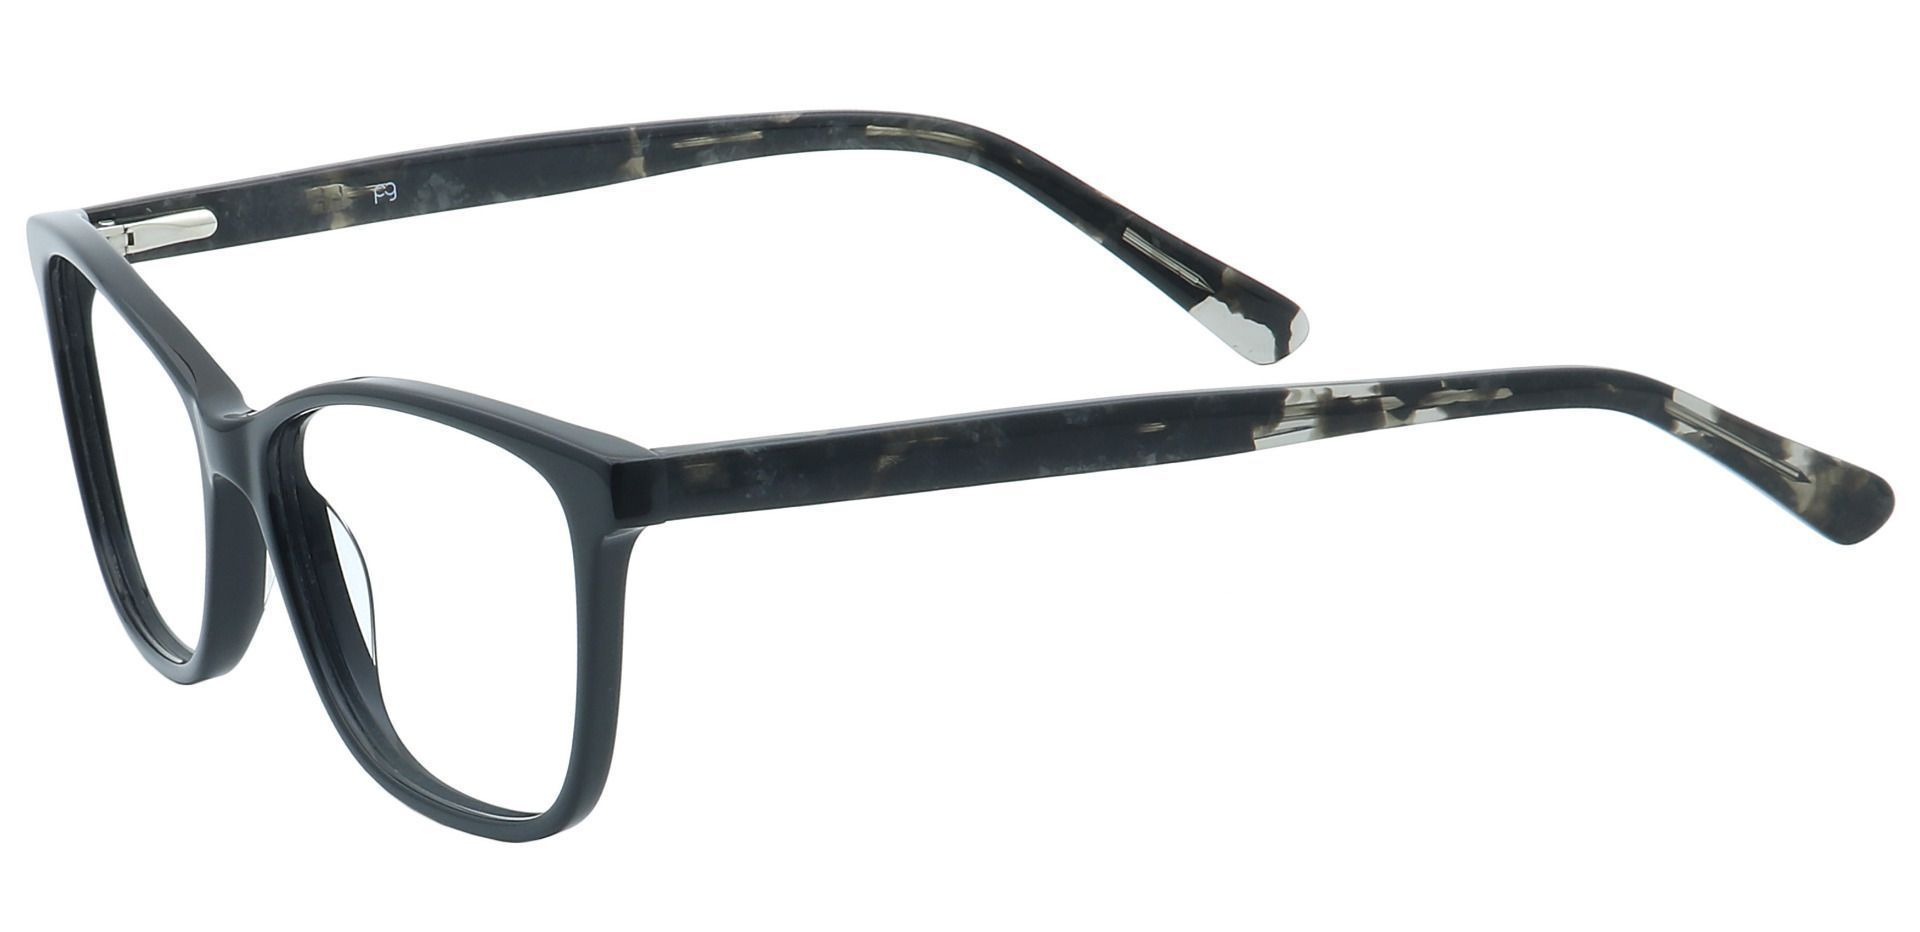 Casper Rectangle Progressive Glasses - Black